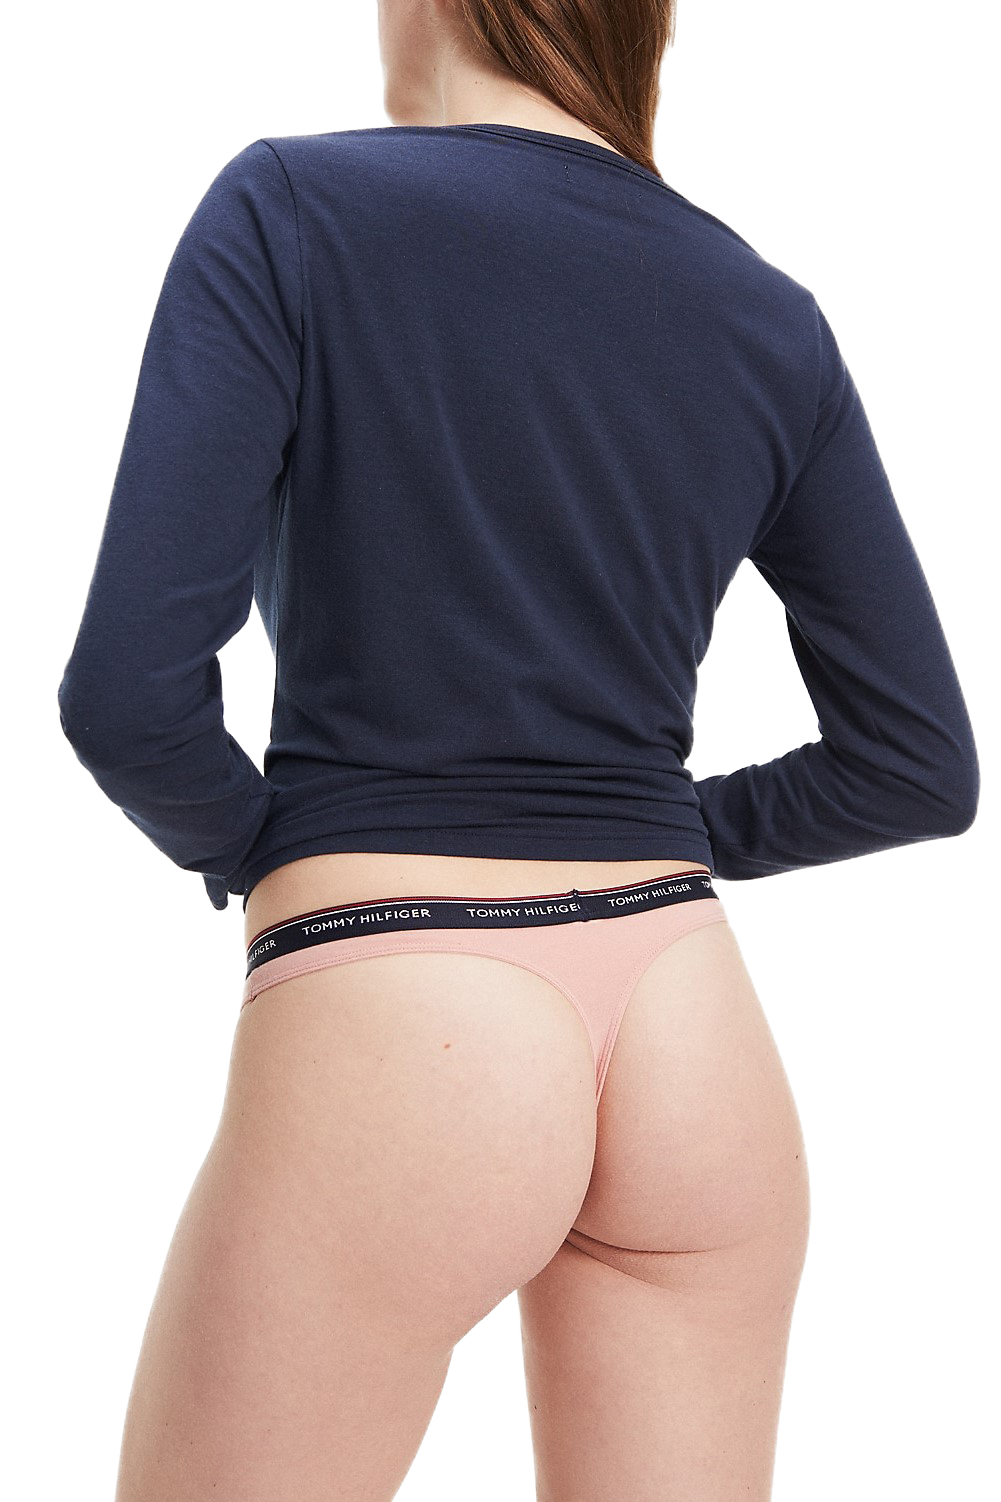 multicolor 3 pack tang 3P Thong